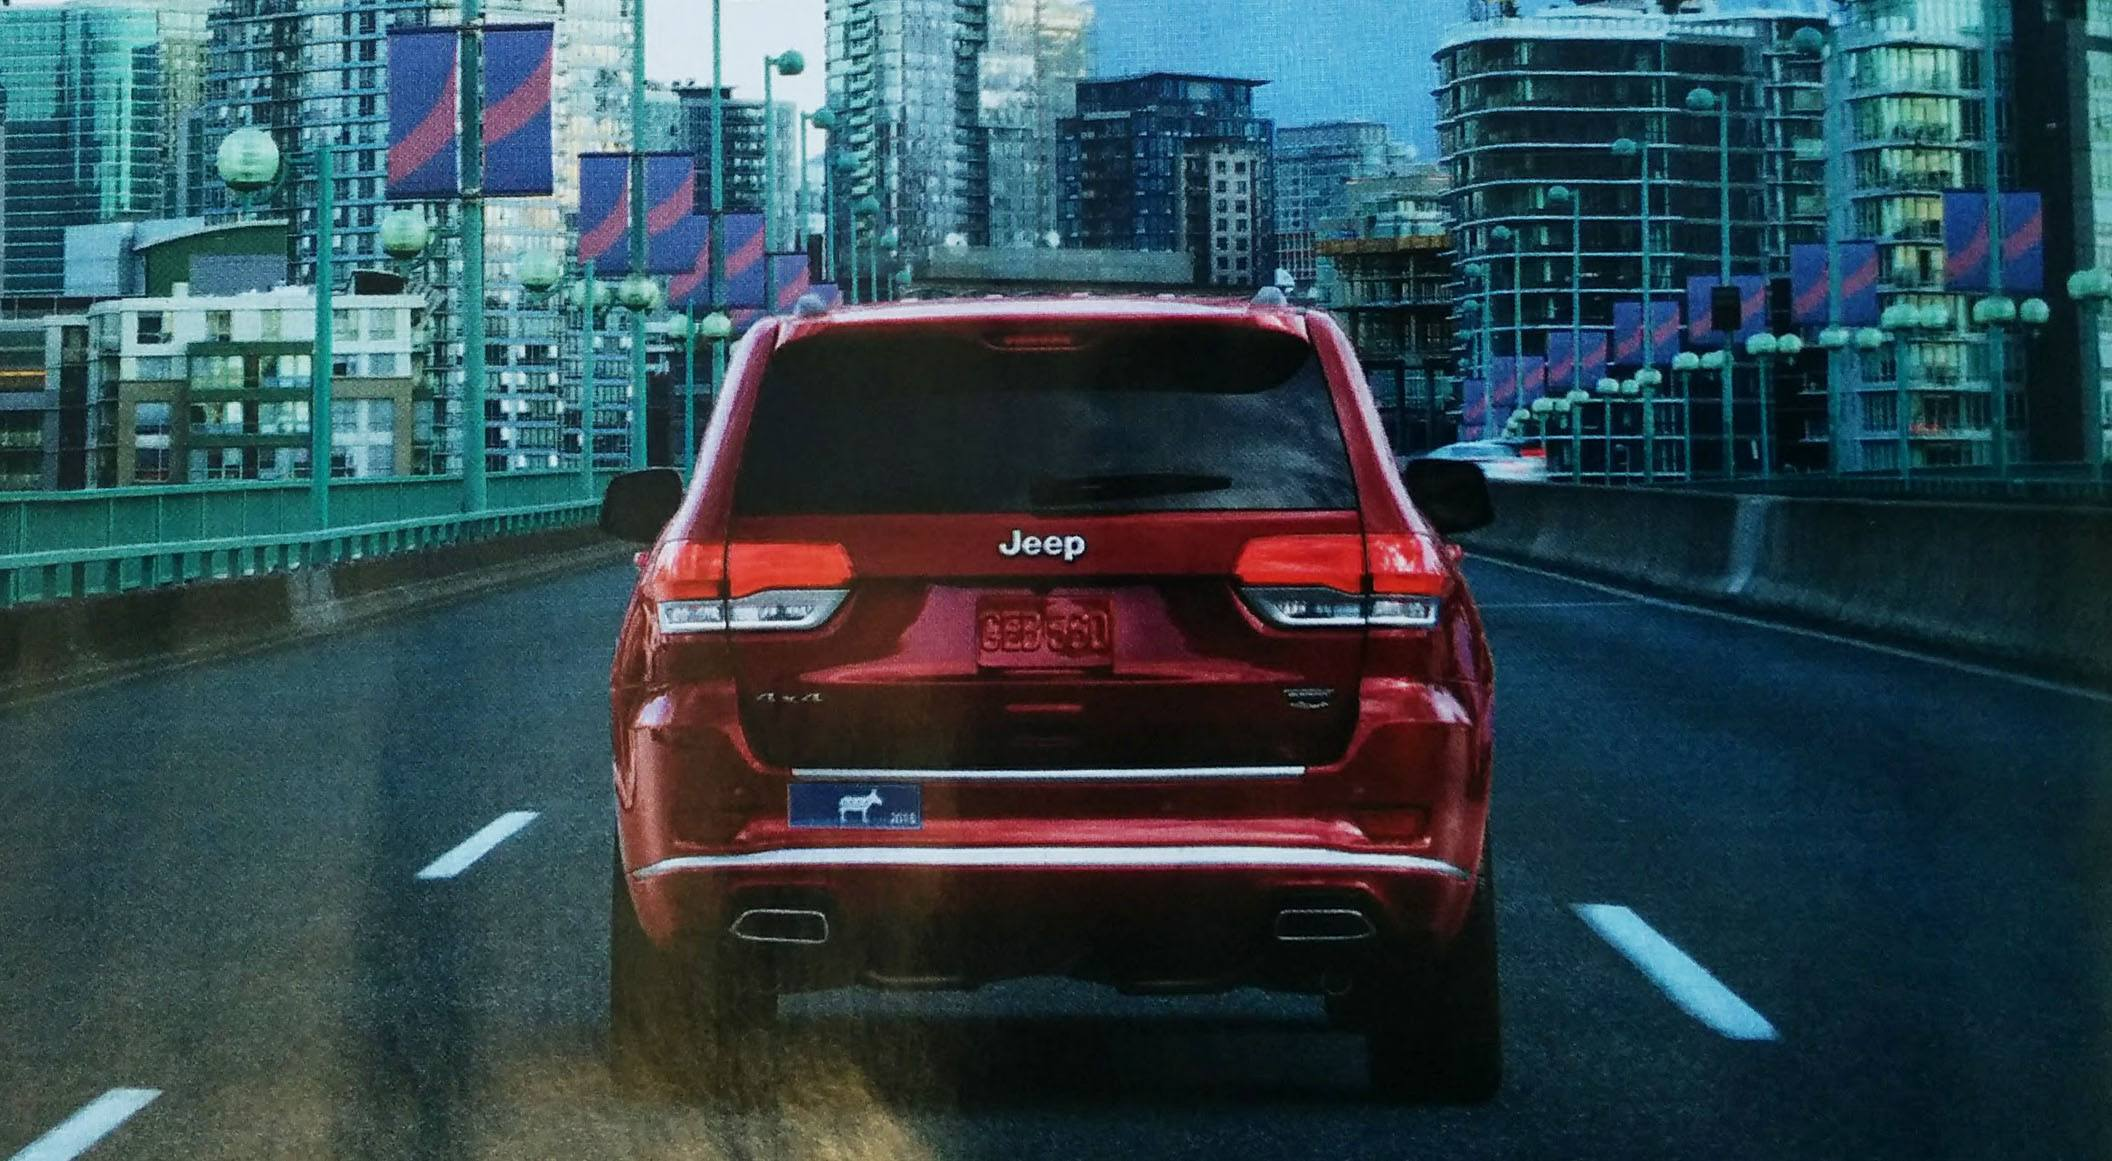 Jeep ad mixes up Vancouver with American 'melting pot'